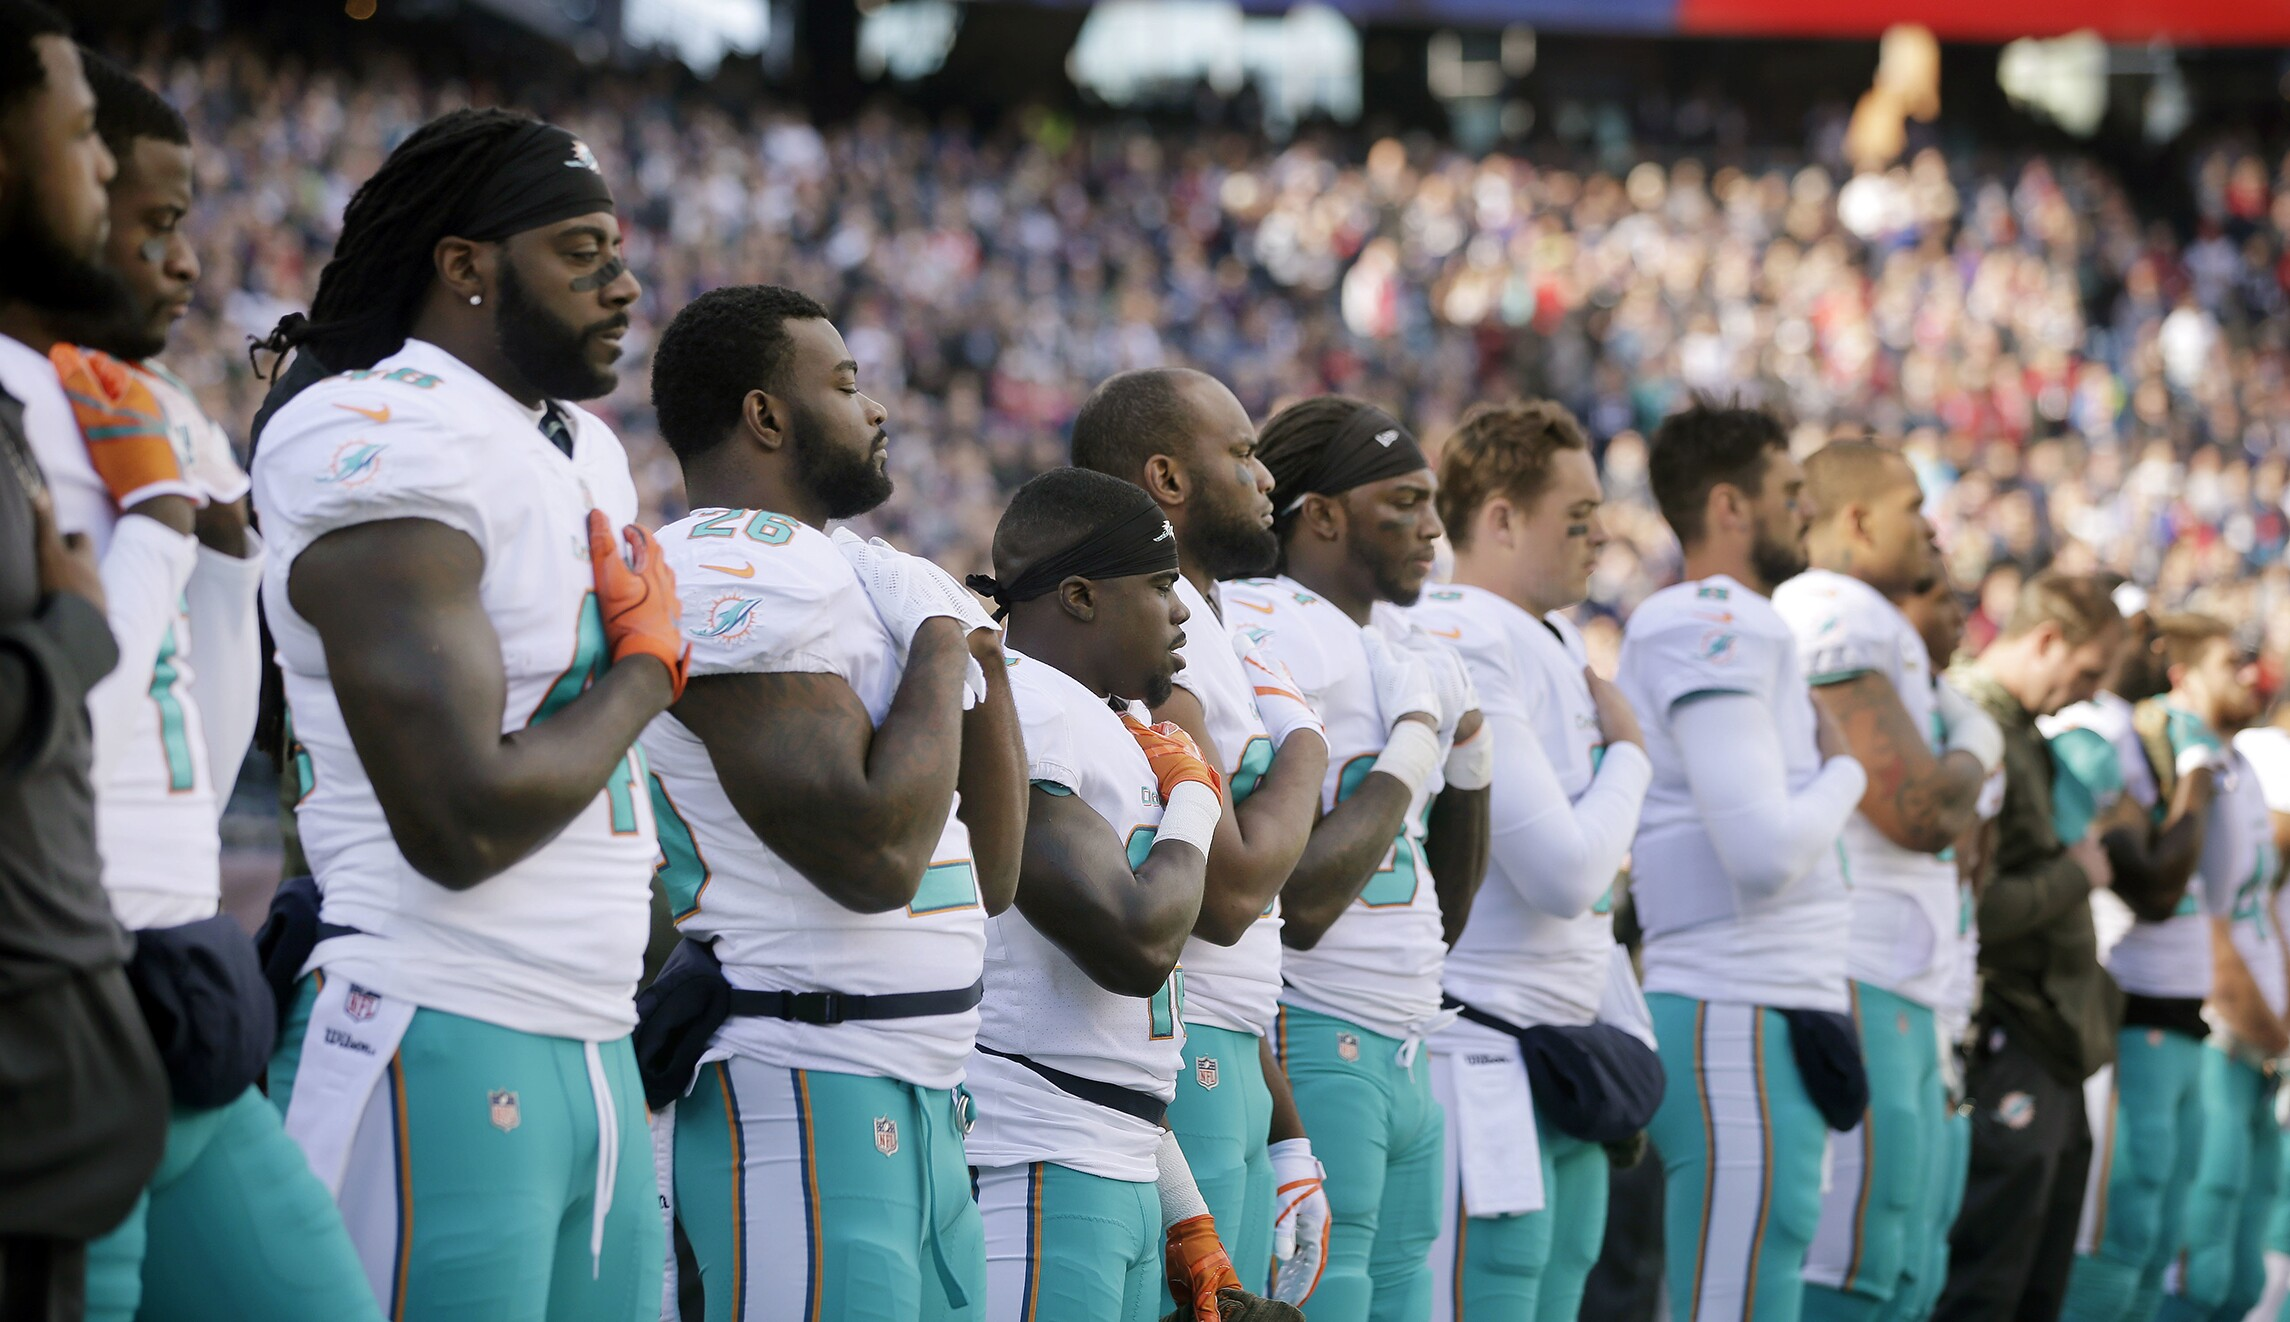 Miami Dolphins owner: 'All our players will be standing' for